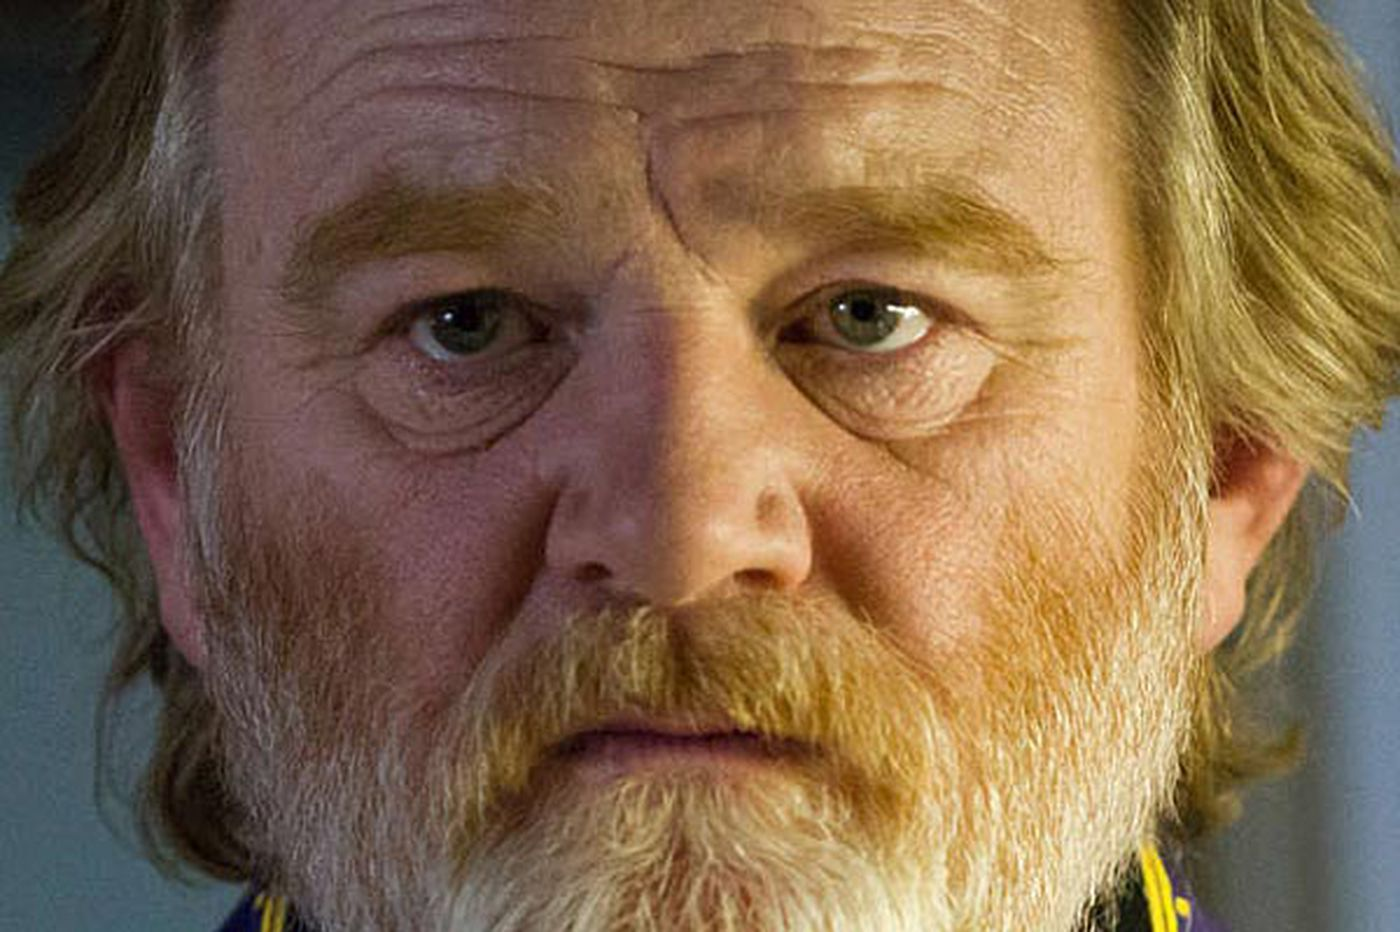 'Calvary': A priest targeted for sins of the fathers